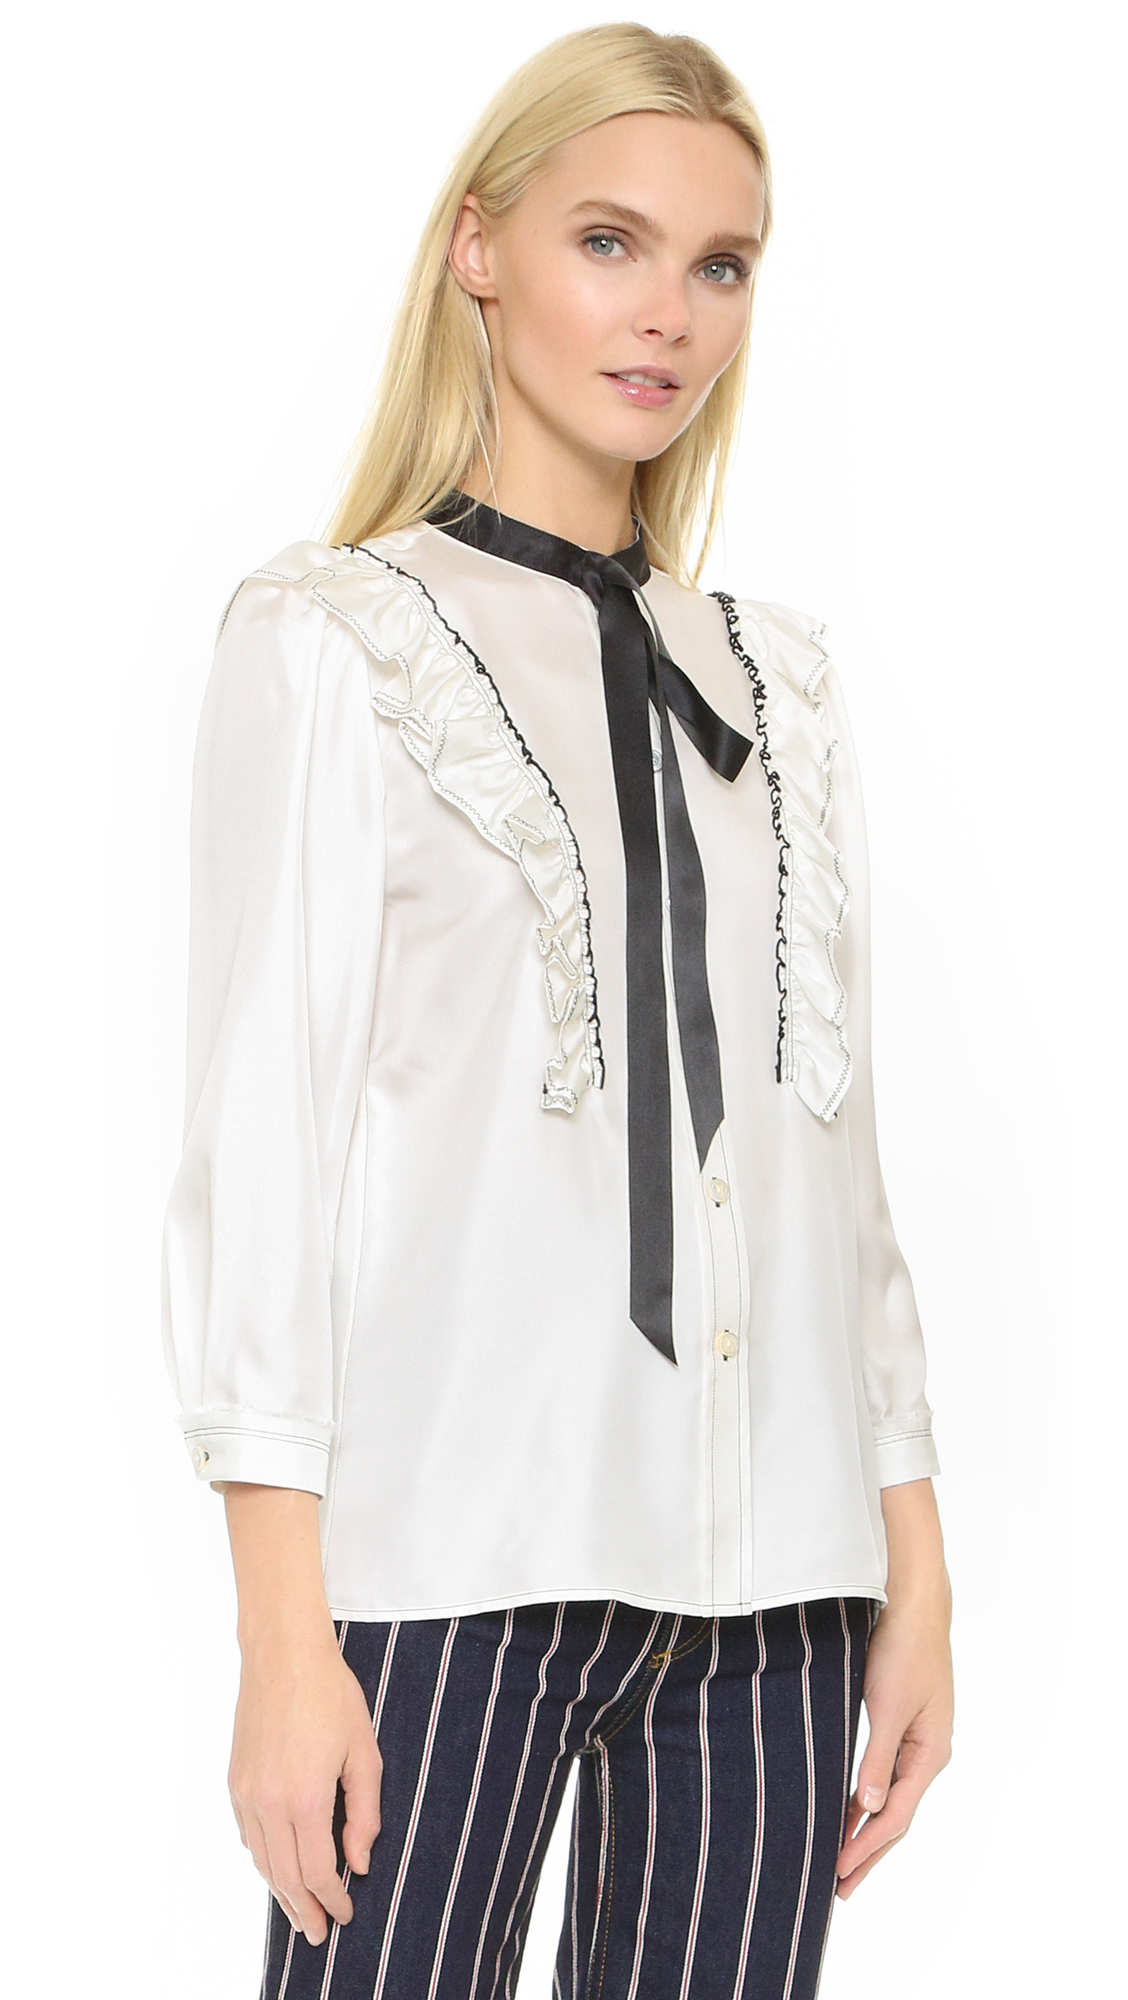 9b7761b52 Marc Jacobs Ruffle Button Up in White - Lyst